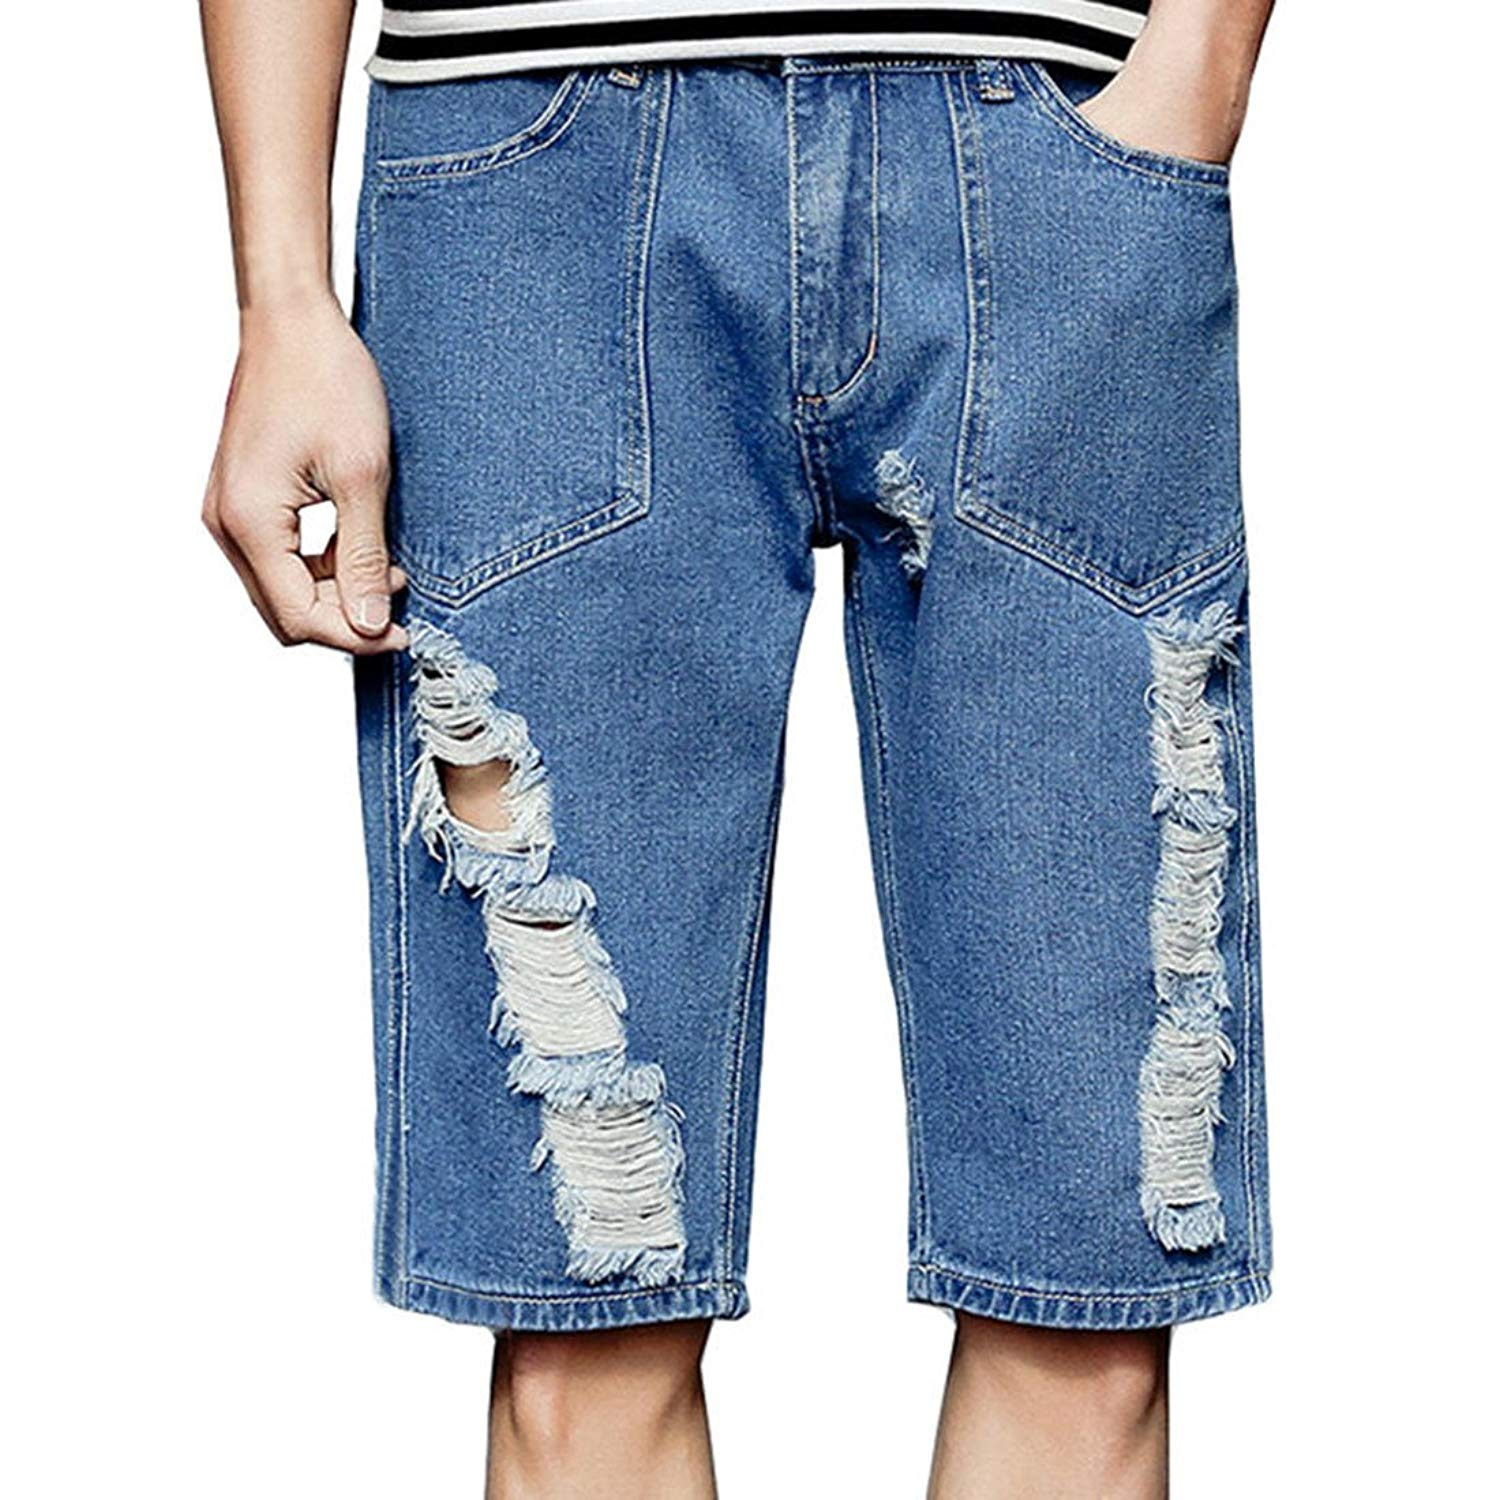 Hzcx Fashion Men's Ripped Distressed Fit Destroyed Straight Zipper Denim Shorts